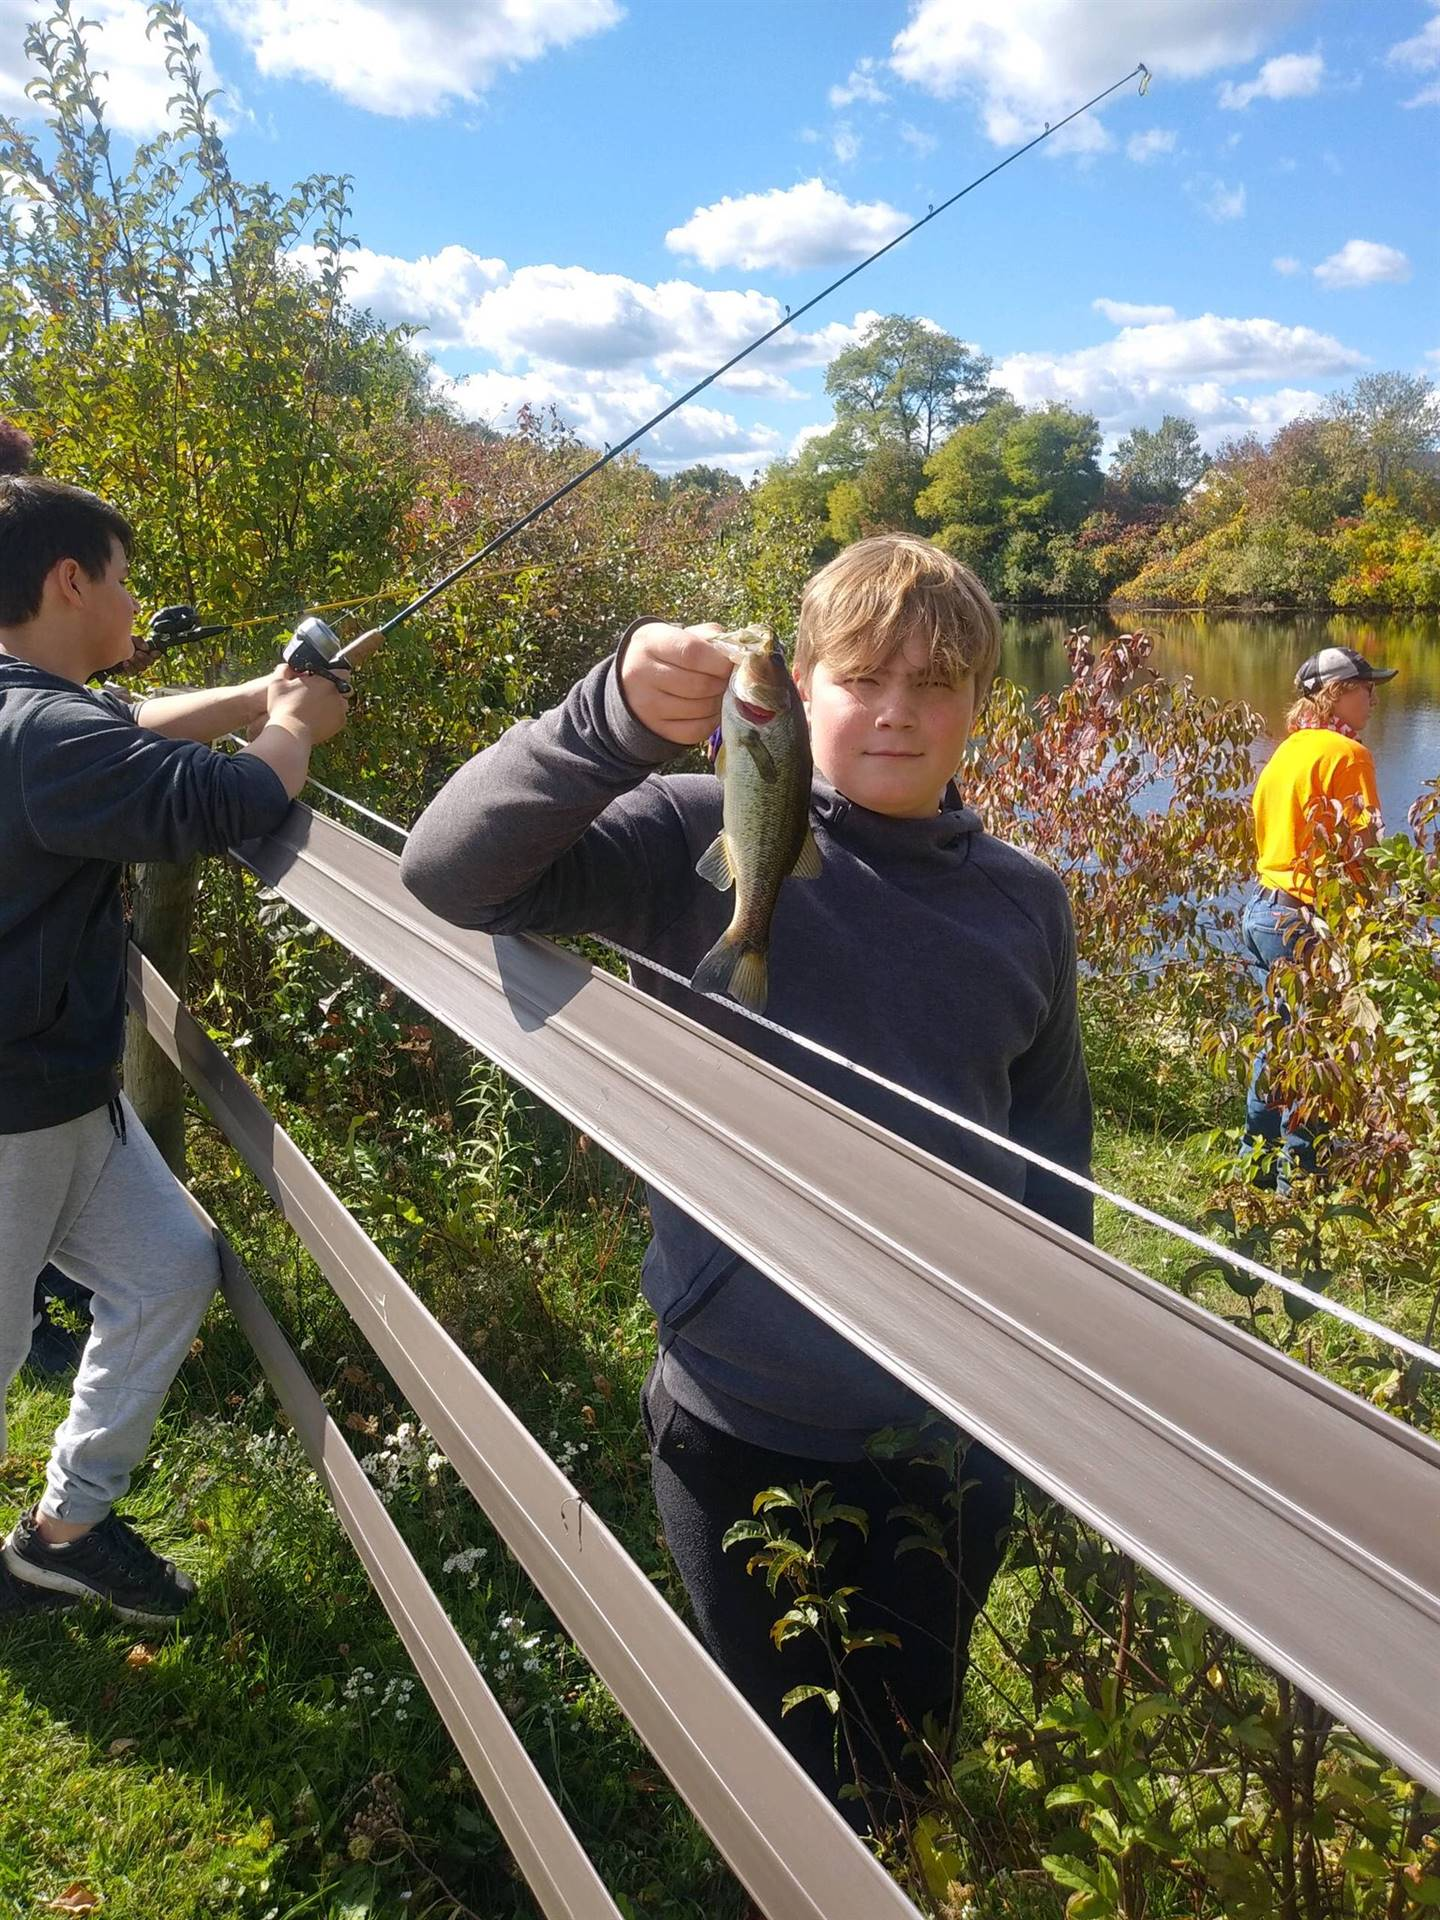 Gaitway High School Students enjoying some nice weather out at the Fieldstone Farms pond!